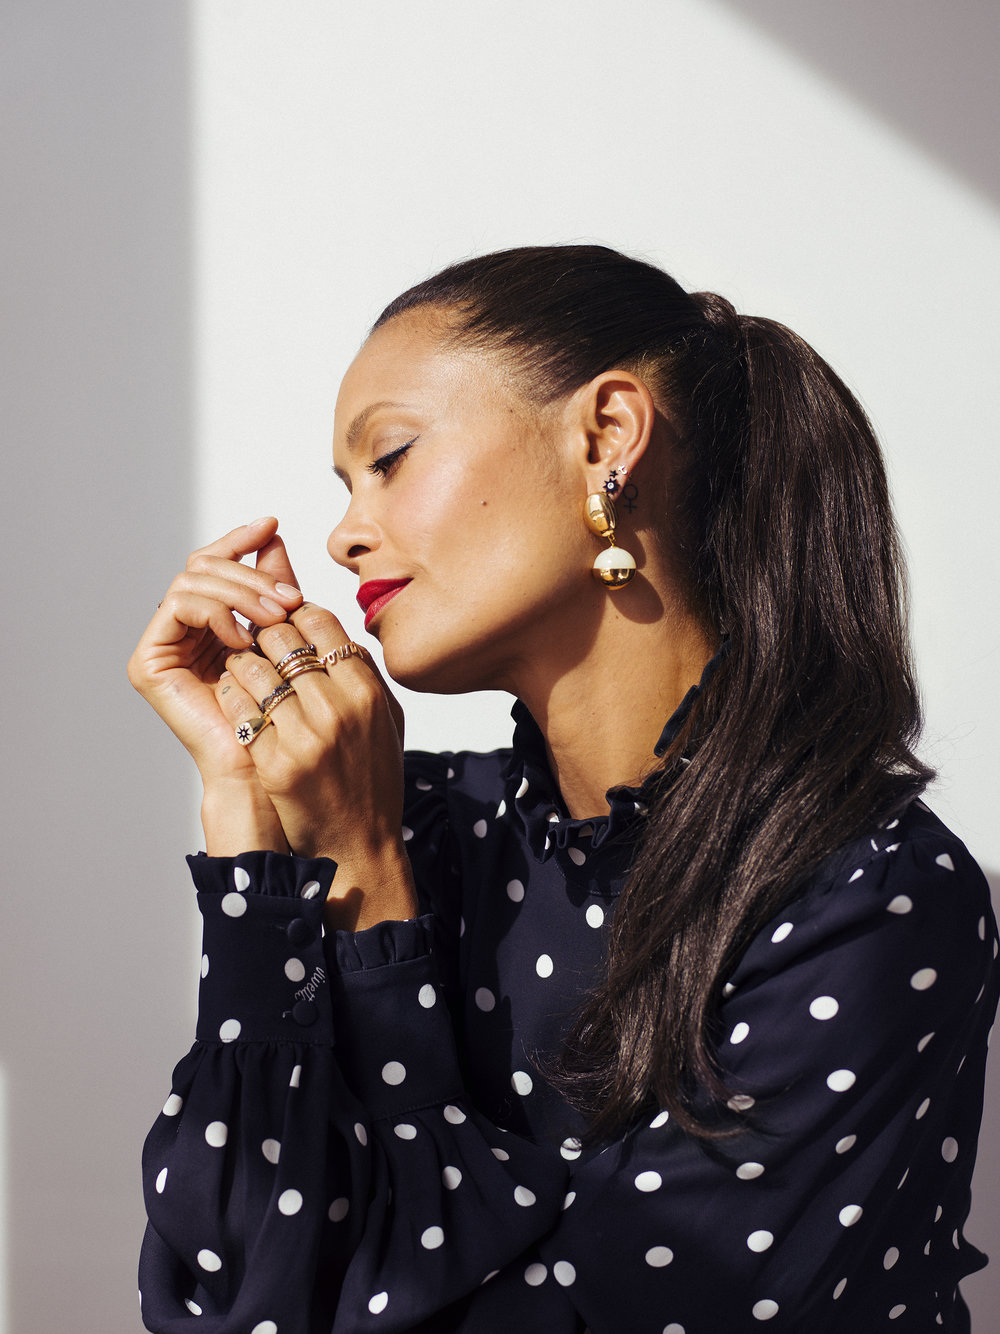 THANDIE NEWTON | ACTOR